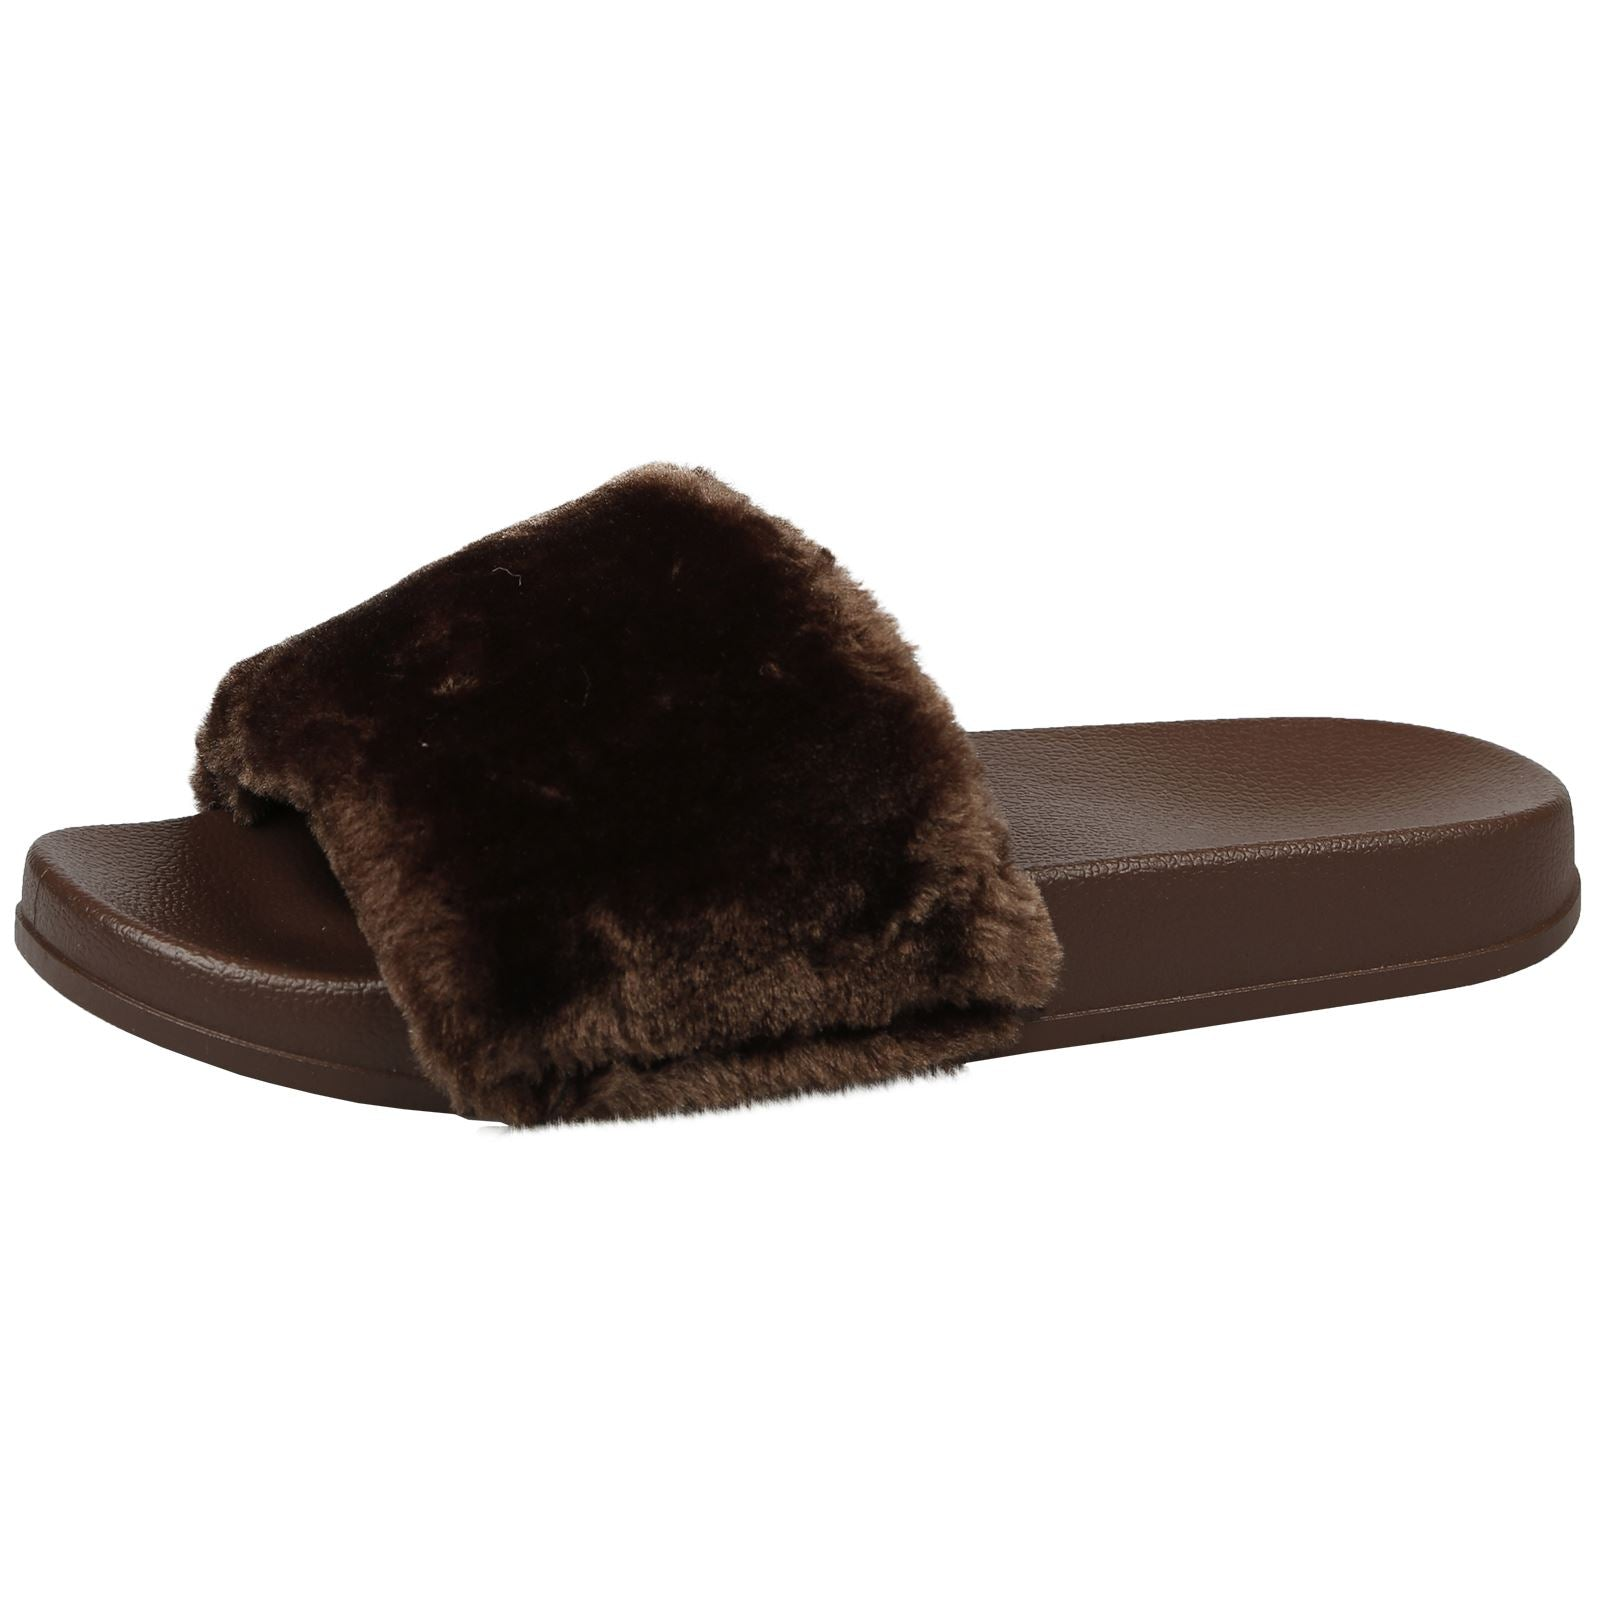 Romy Fur Trim Sliders in Brown